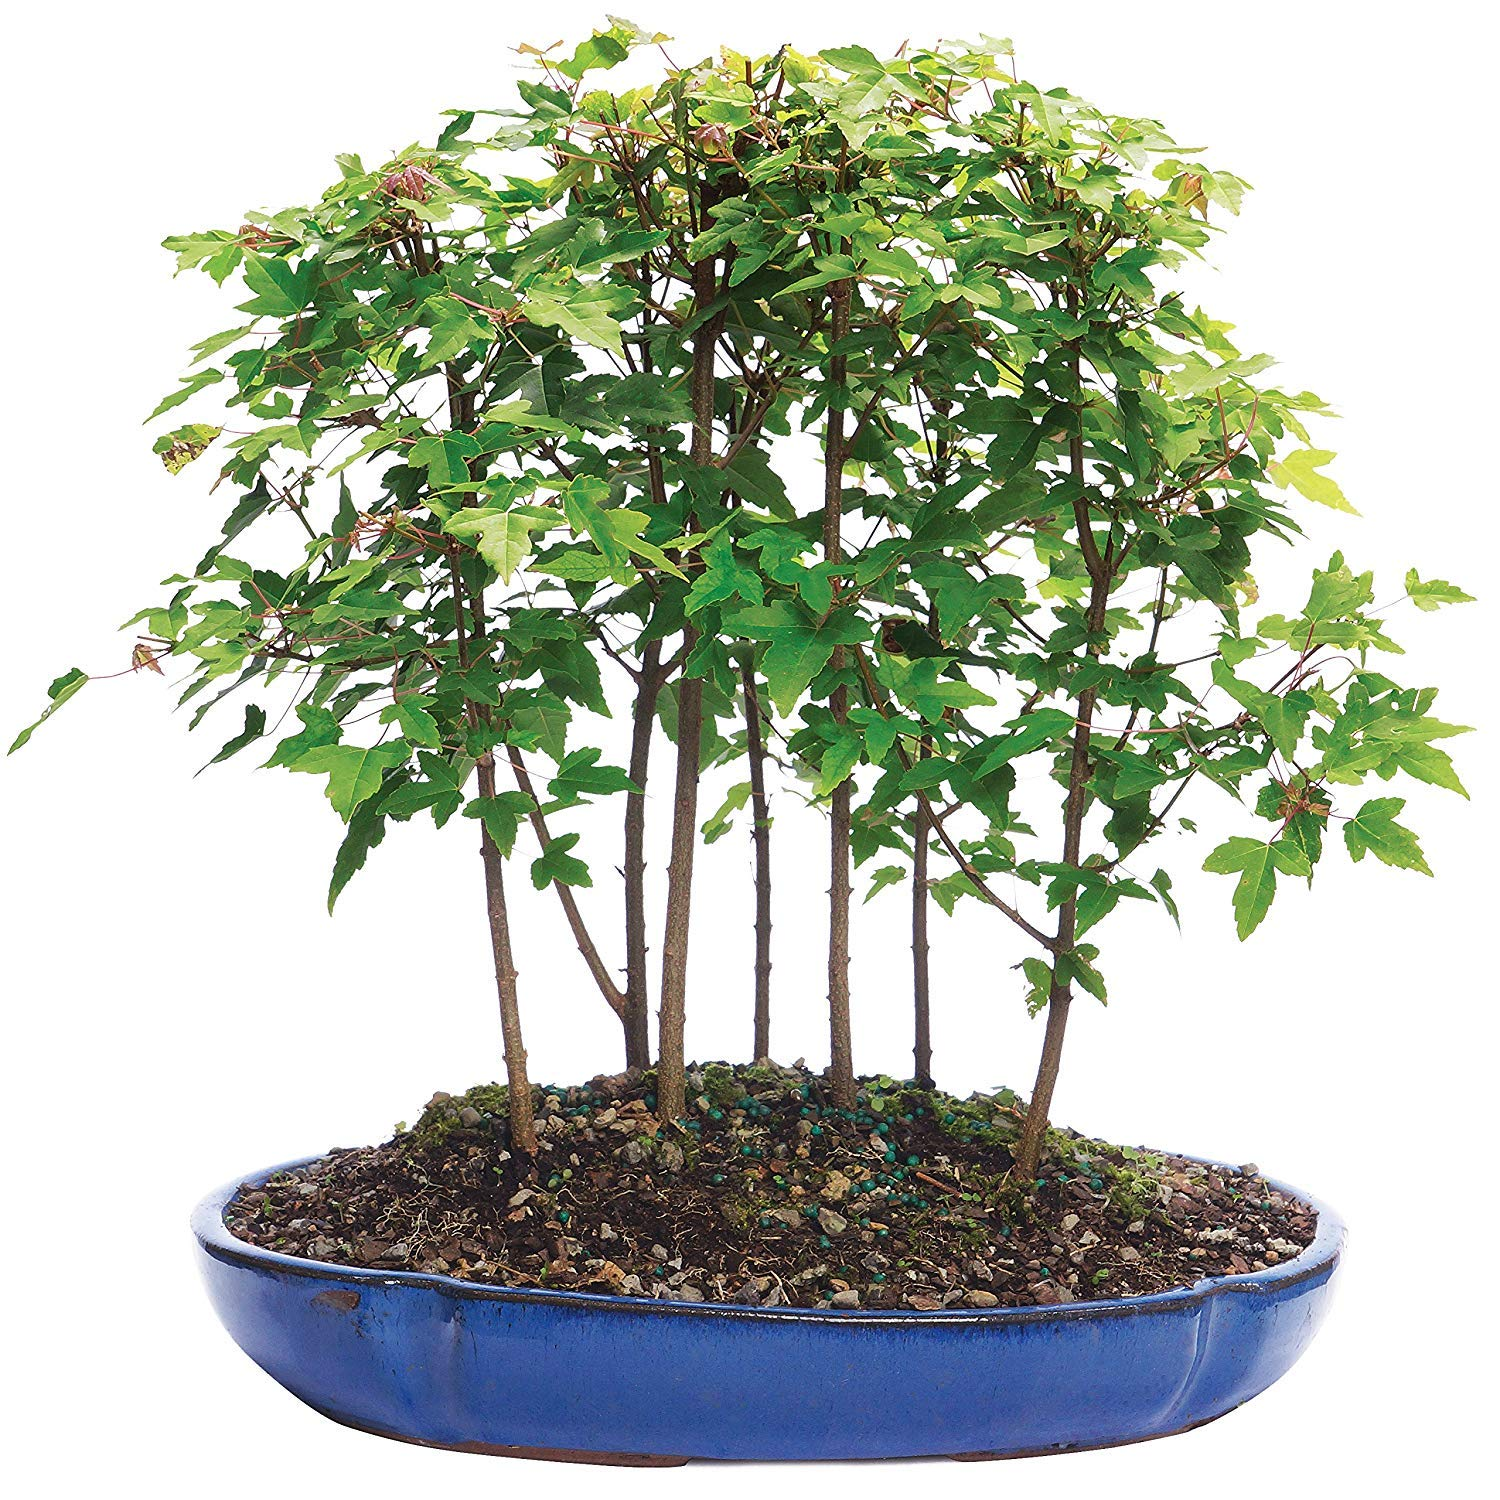 Brussel's Bonsai Live Trident Maple Forest 7 Outdoor Bonsai Tree - 3 Years Old; 8'' to 14'' Tall with Decorative Container